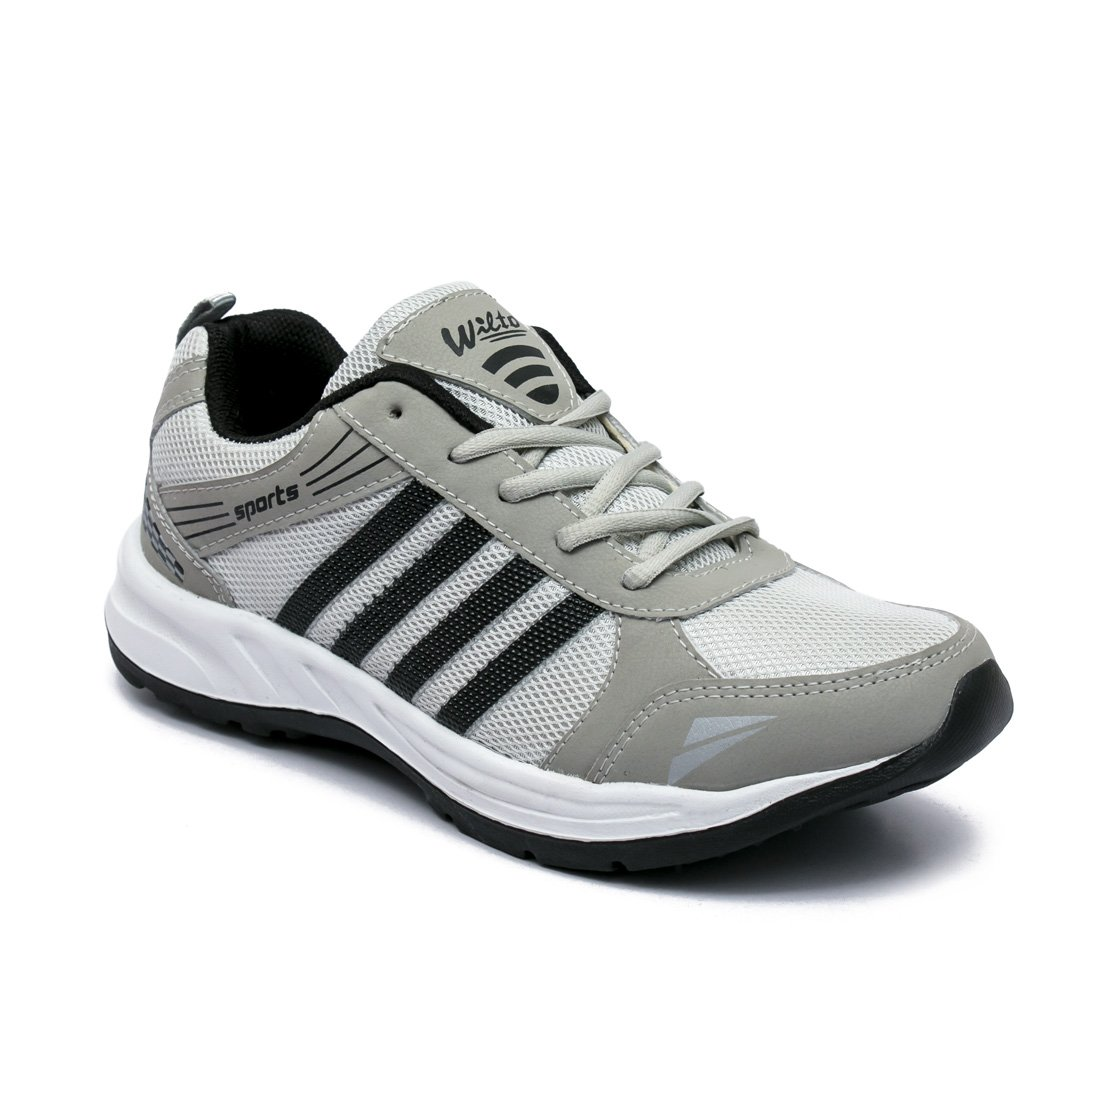 ASIAN Wonder-13 Running Shoes,Gym Shoes